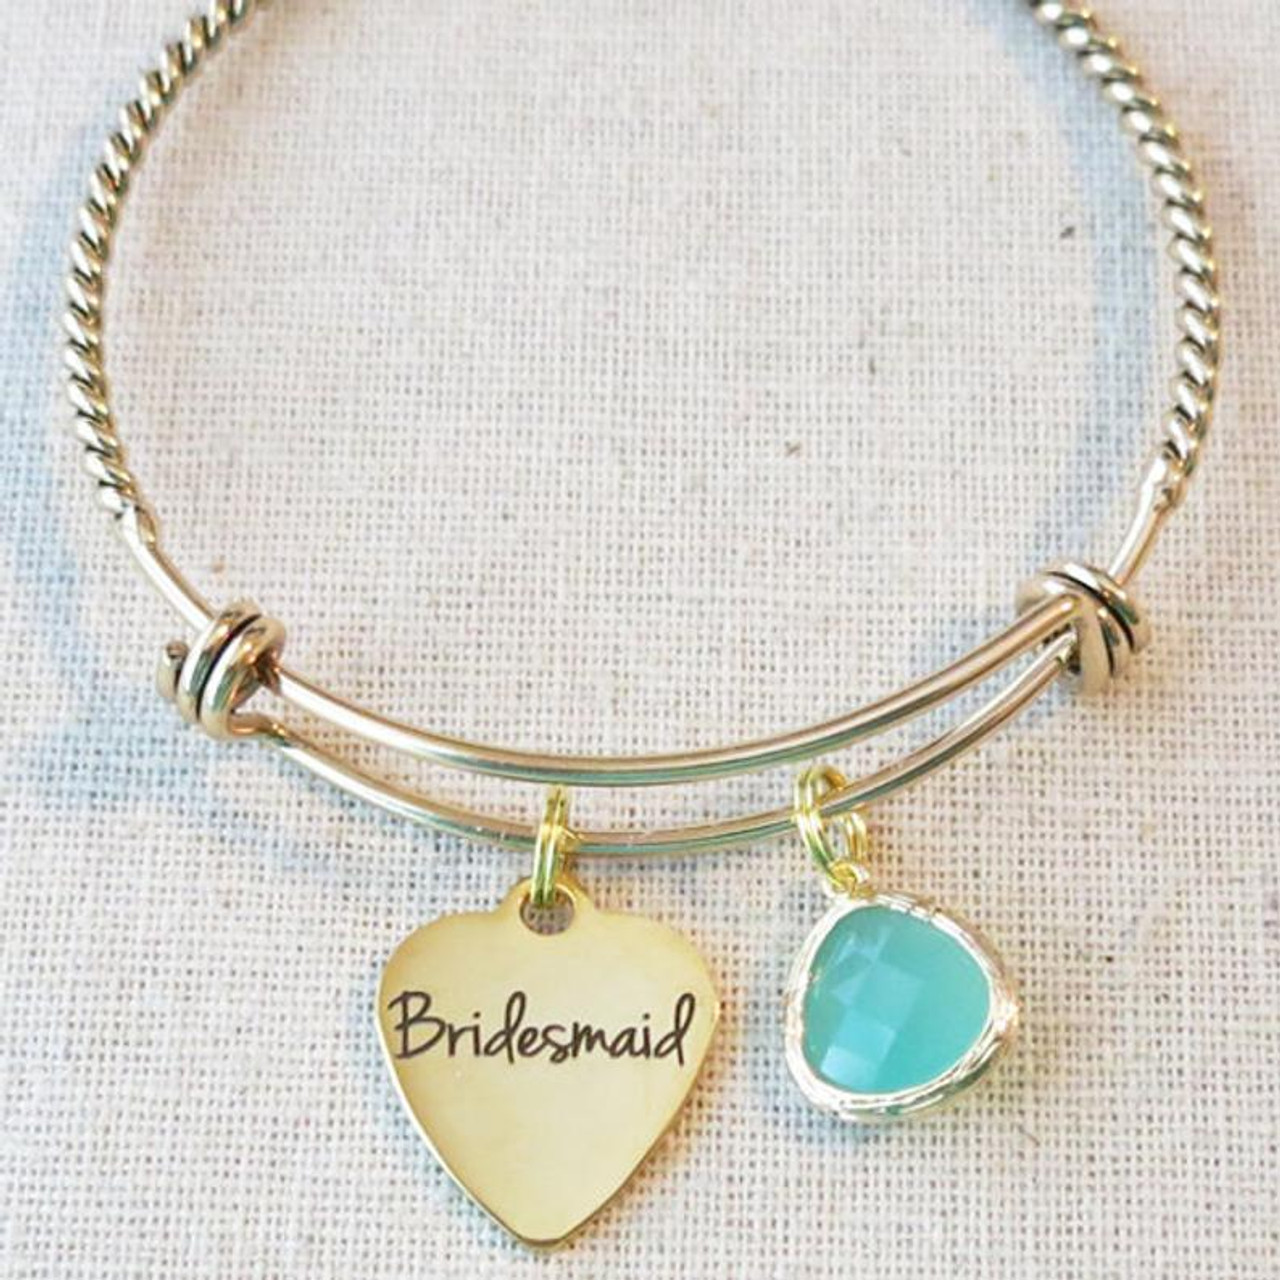 Personalised Initial Bridesmaid Gift Bridesmaid Proposal Bracelet with Initial